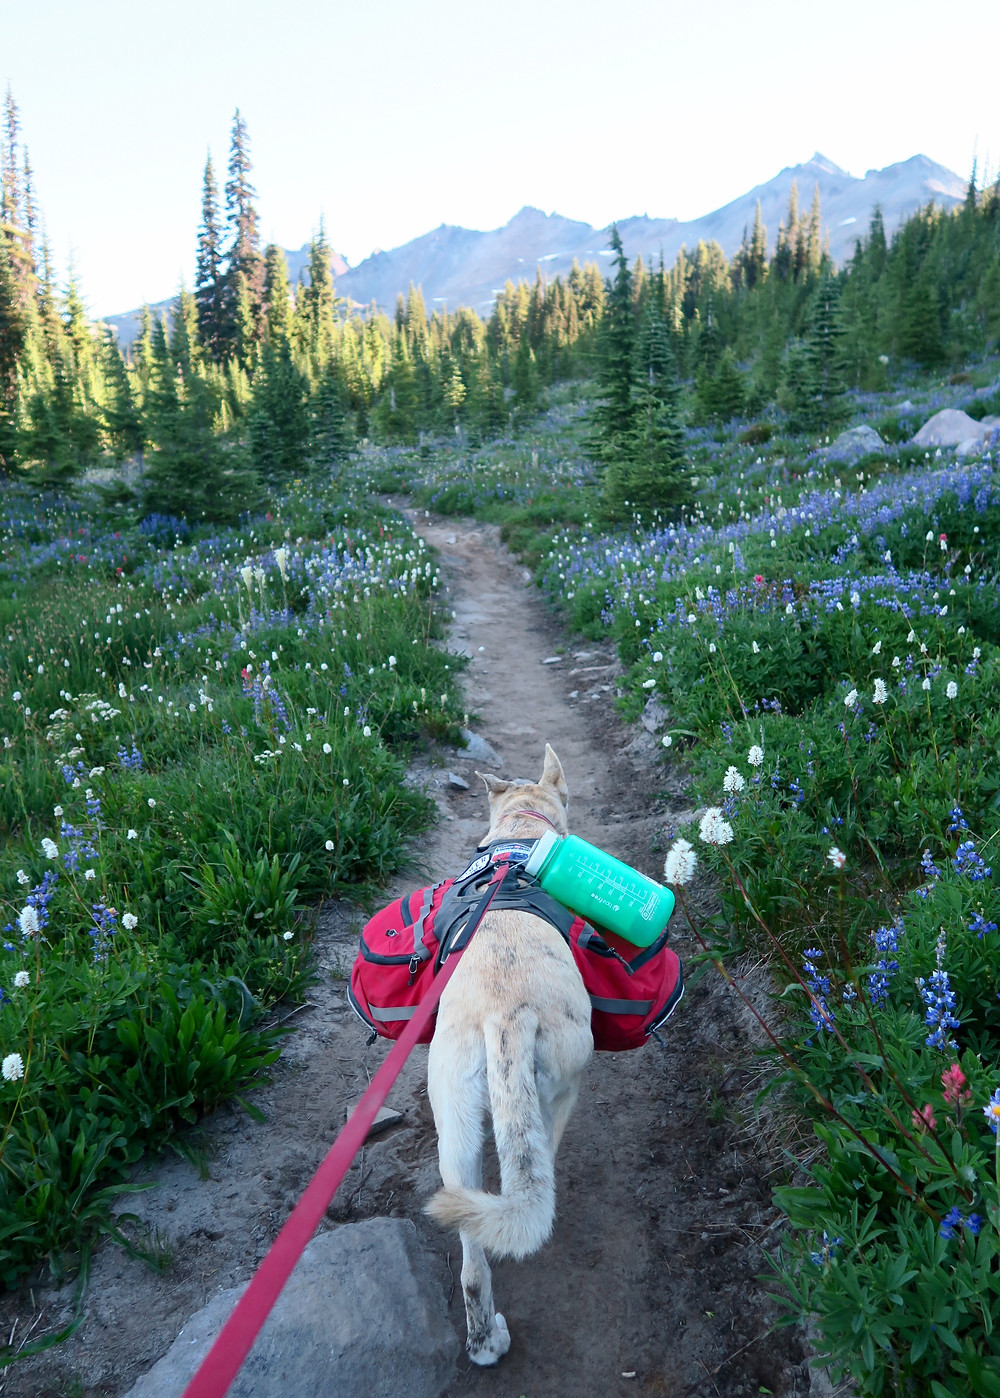 A blond dog wearing a red pack walks down a narrow dirt trail surrounded by white and purple wildflowers.